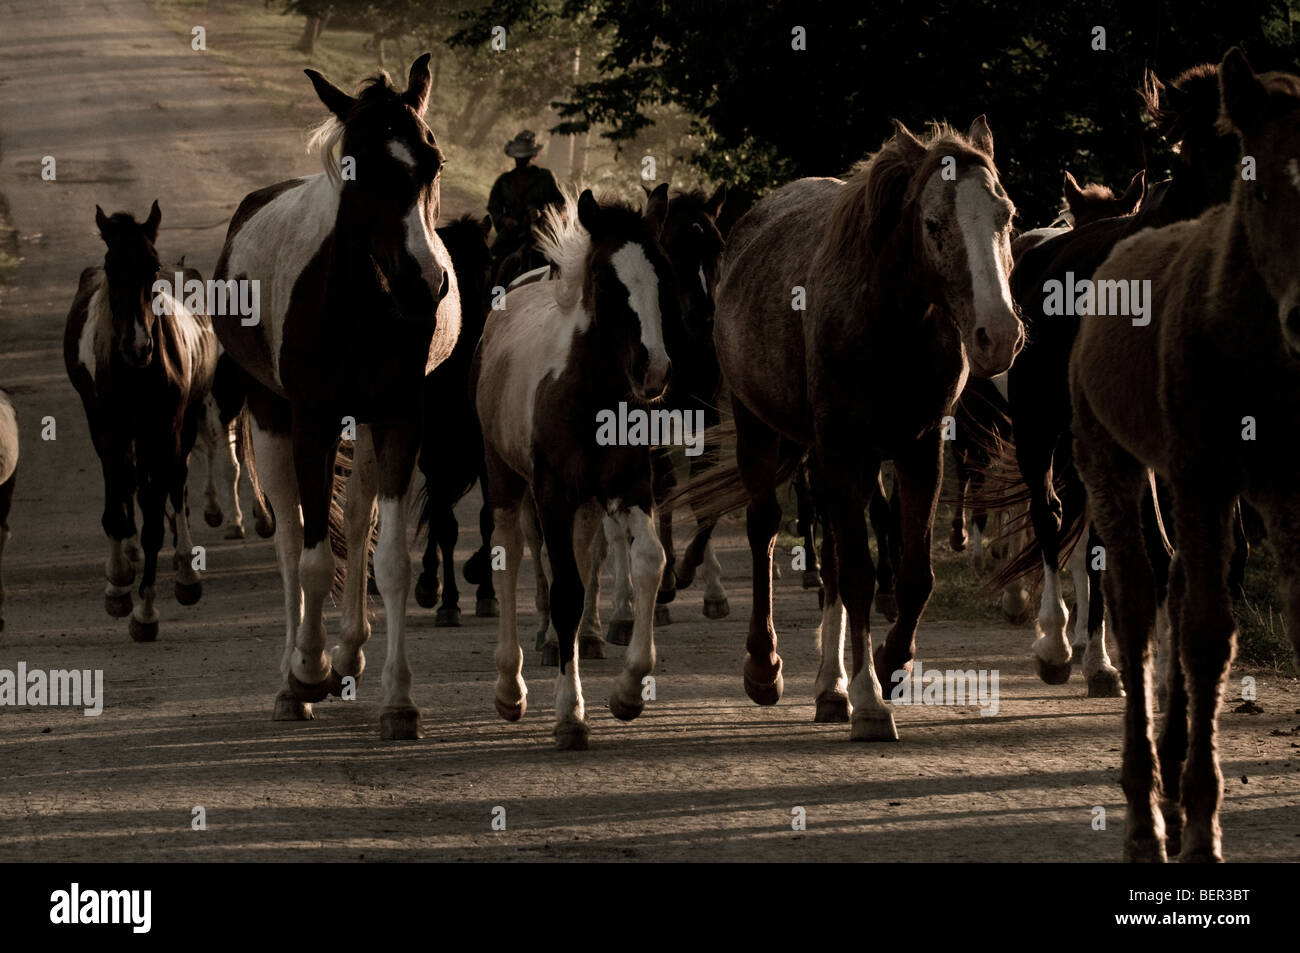 A herd of brood mares trot swiftly along a dusty road at sunset. - Stock Image